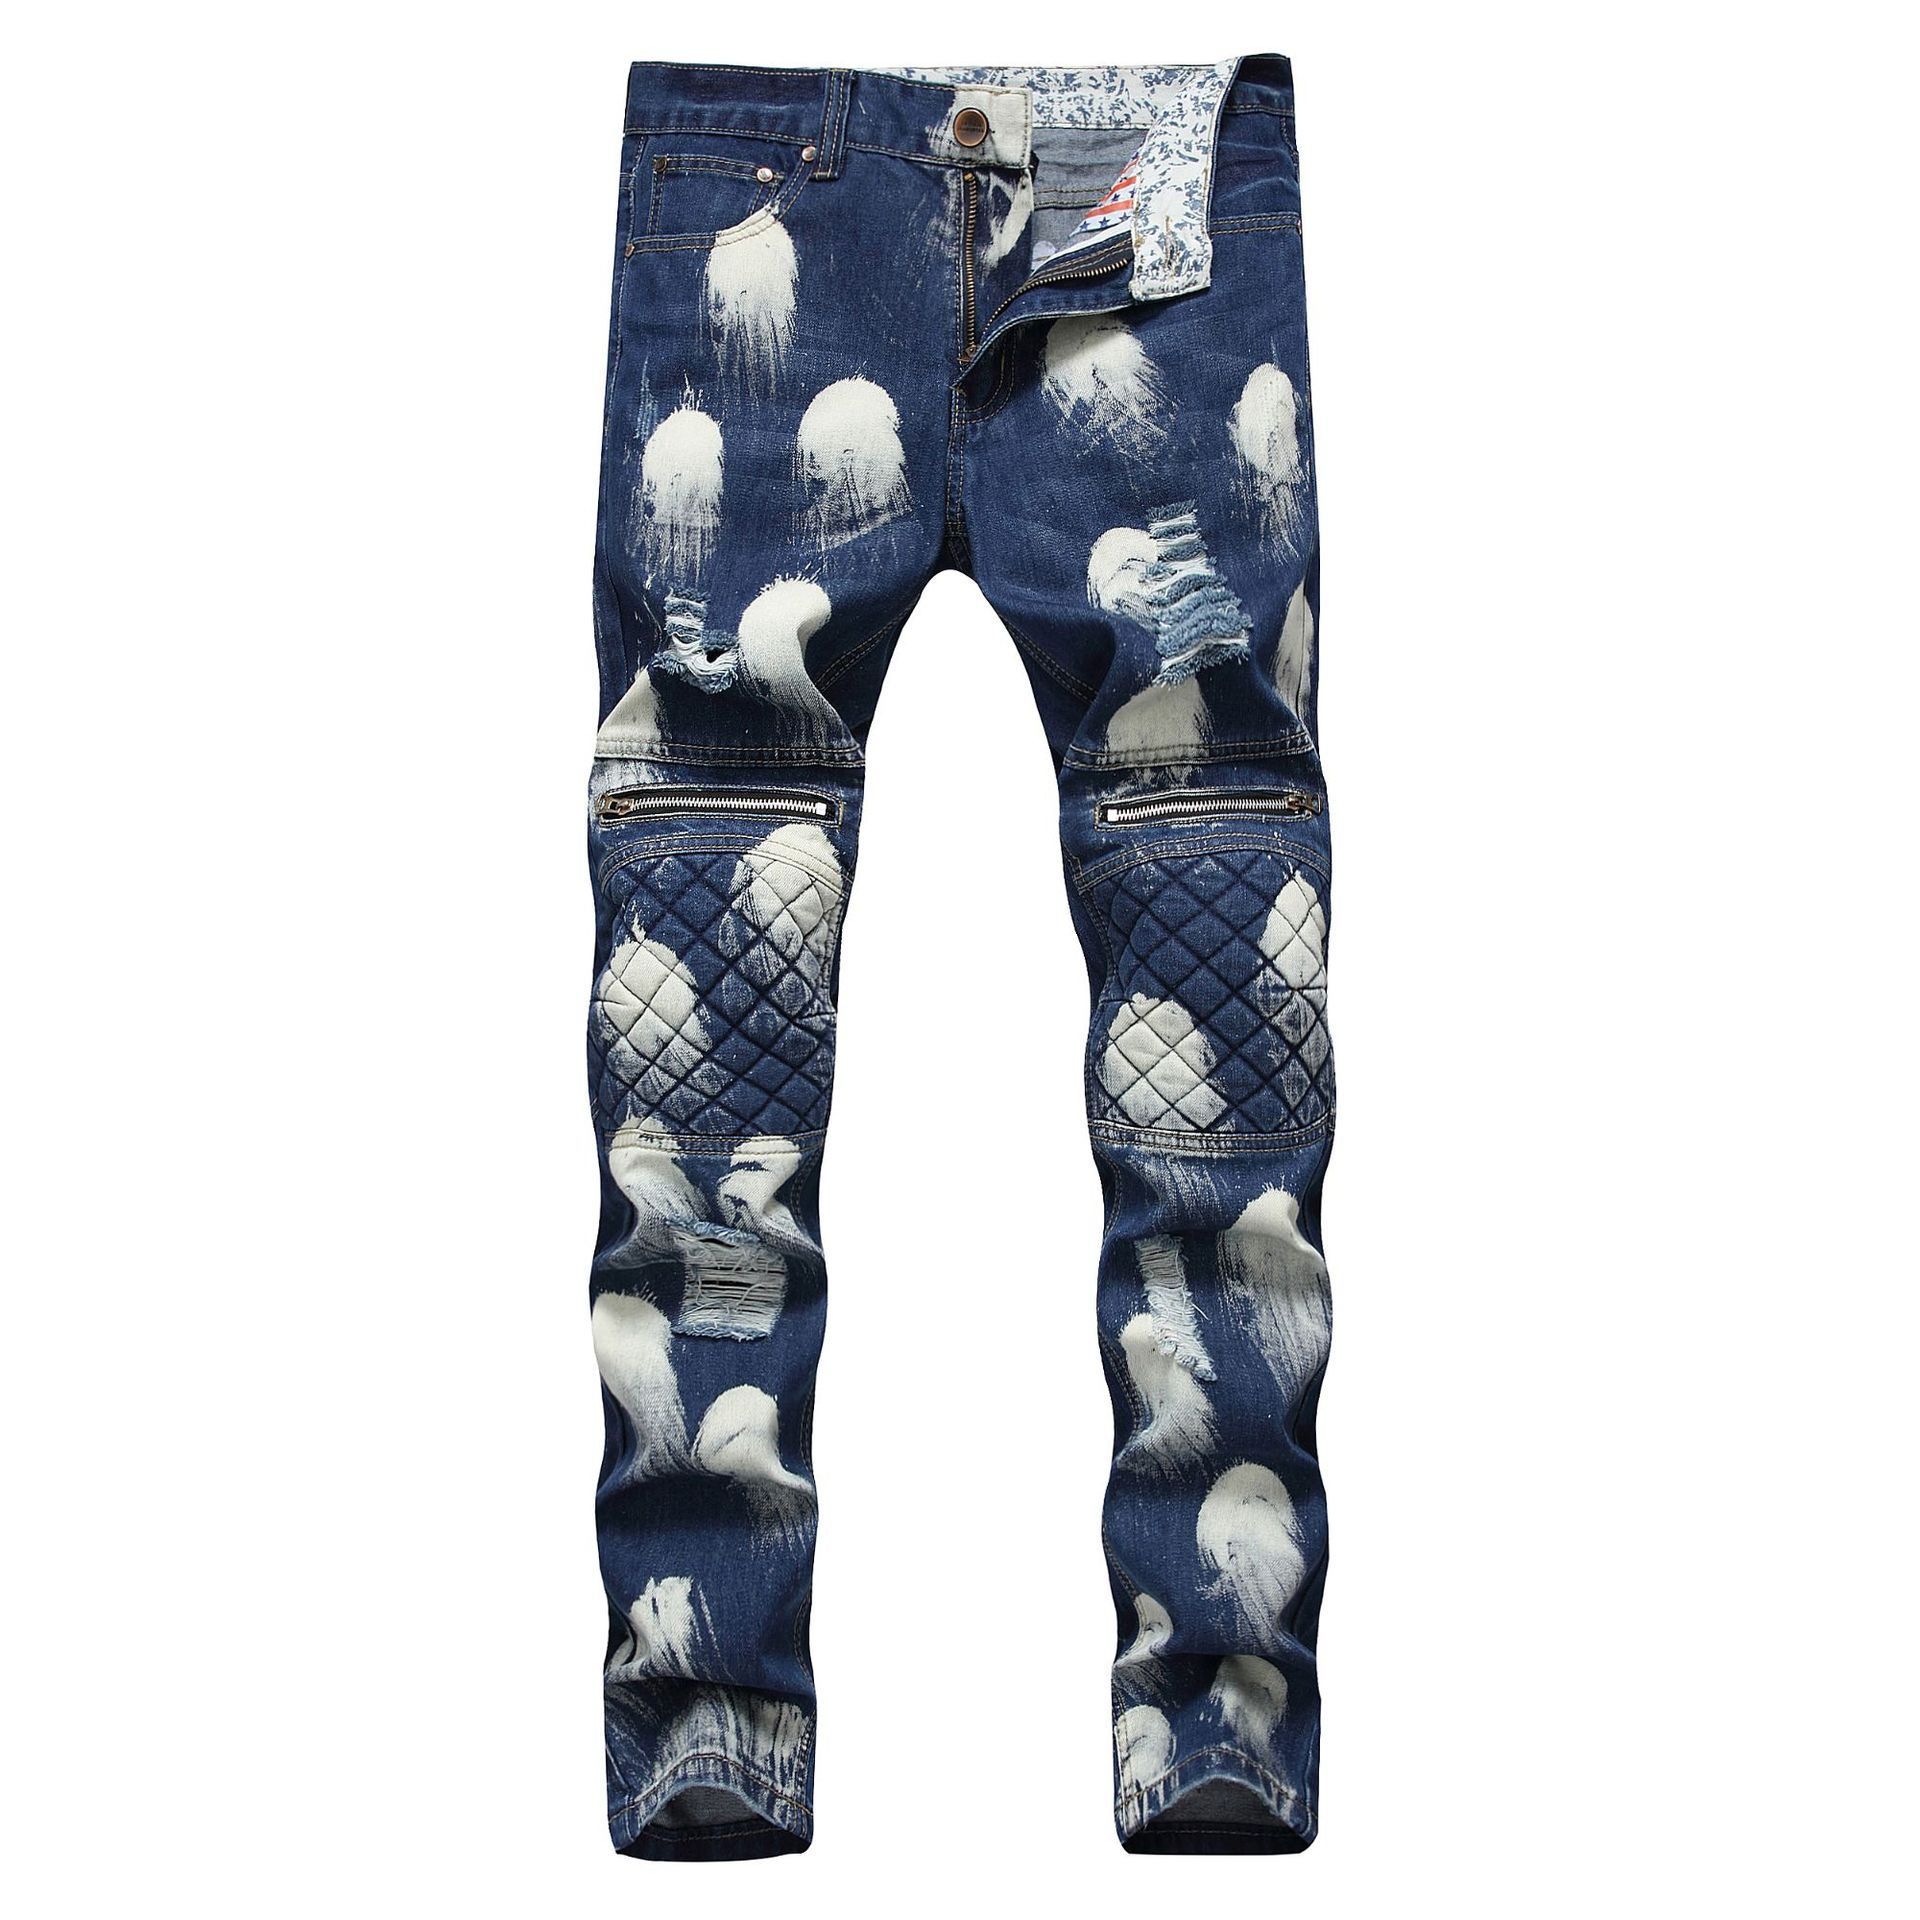 Men 39 s Jeans Europe and America Style Hole Fashion Trends Folded Snowflakes Zipper Decoration Motorcycle Pants in Jeans from Men 39 s Clothing